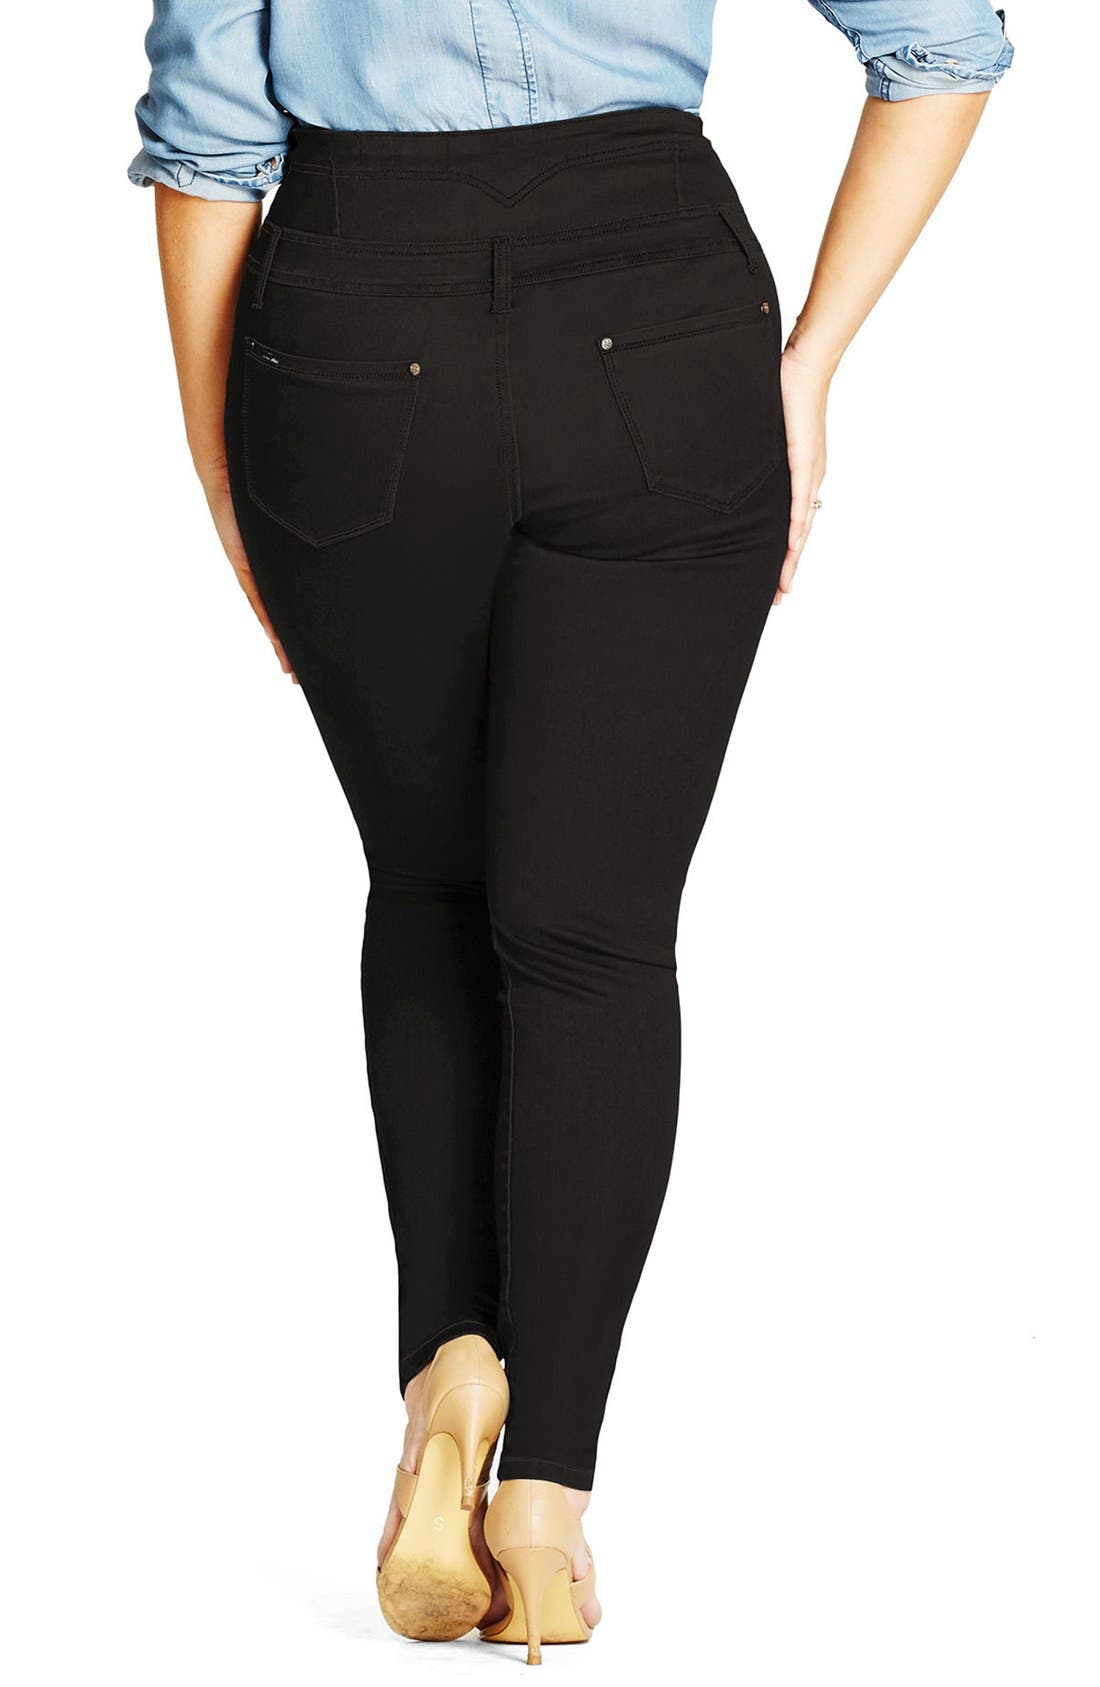 Alternate Image 2  - City Chic 'Harley' Corset Waist Skinny Jeans (Plus Size)